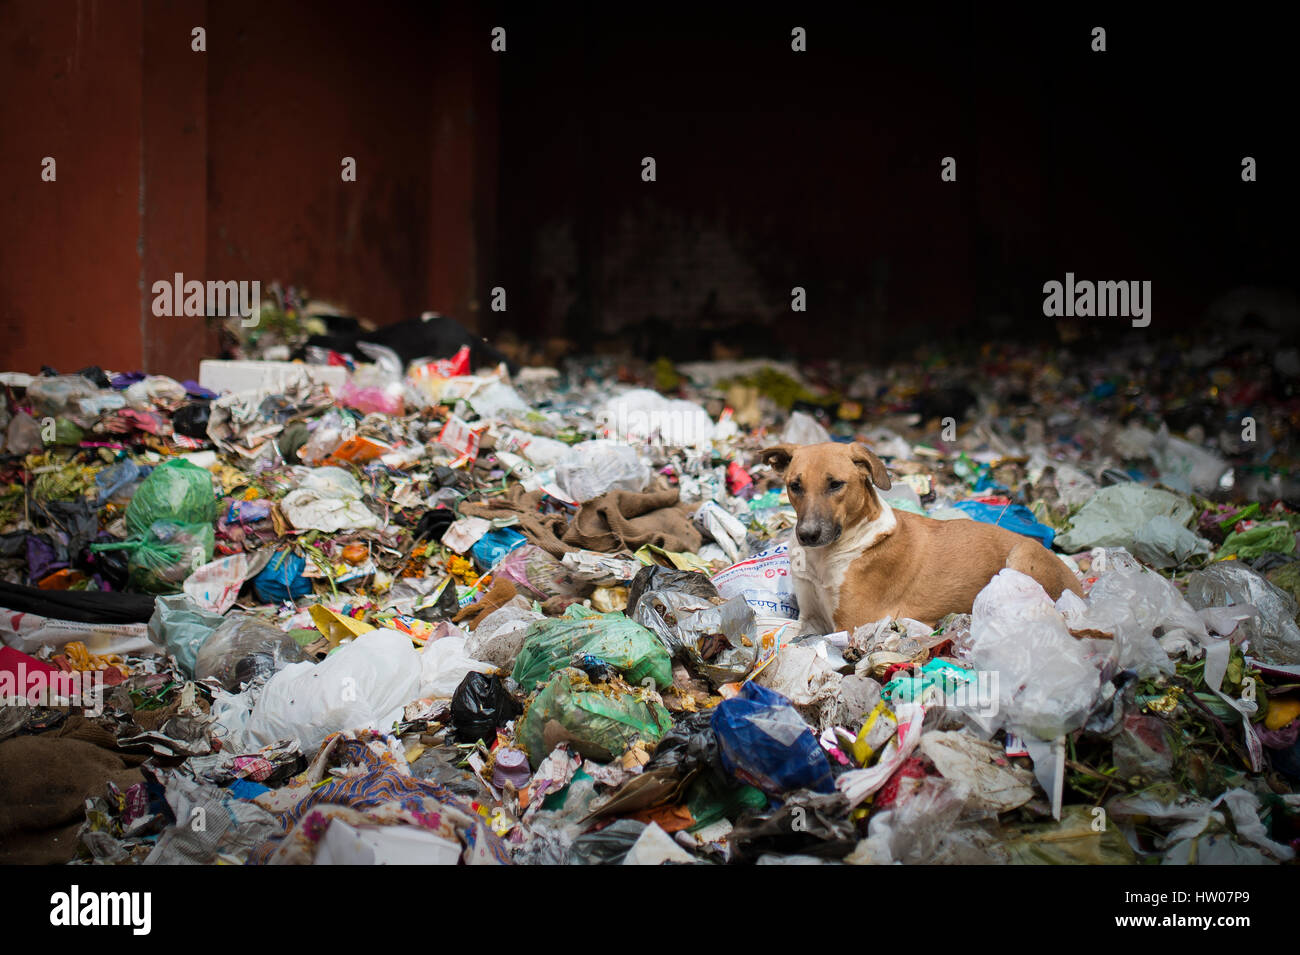 Dogs in garbage dumping grounds trash garbage in India - Stock Image